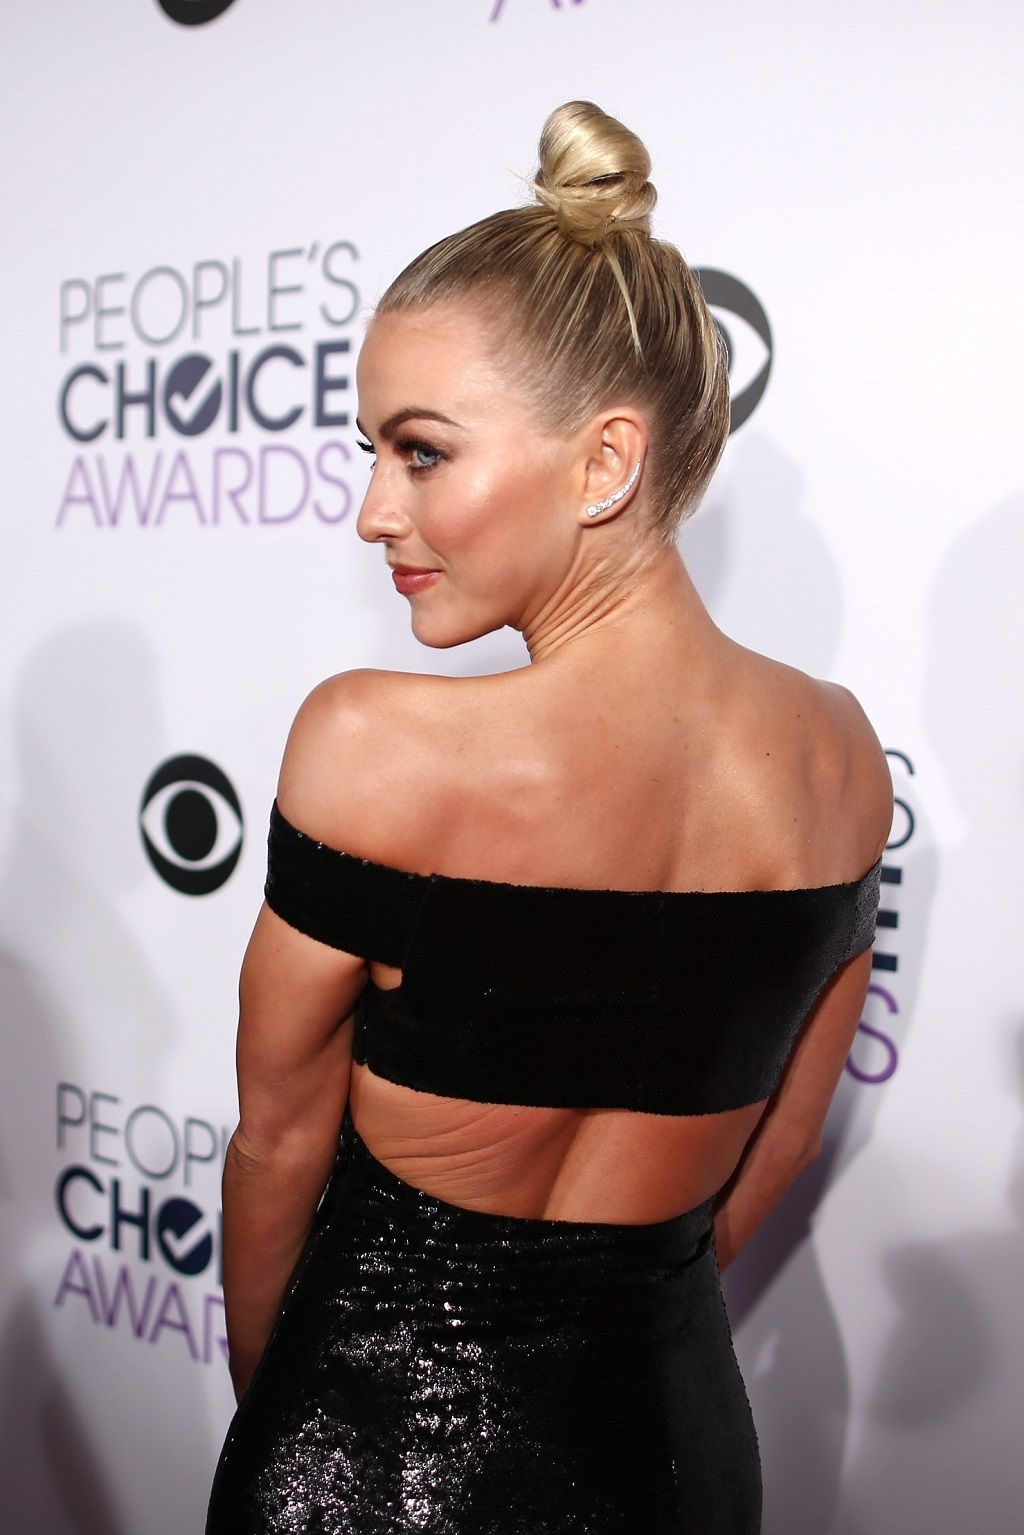 Actress Julianne Hough attends the People's Choice Awards 2016